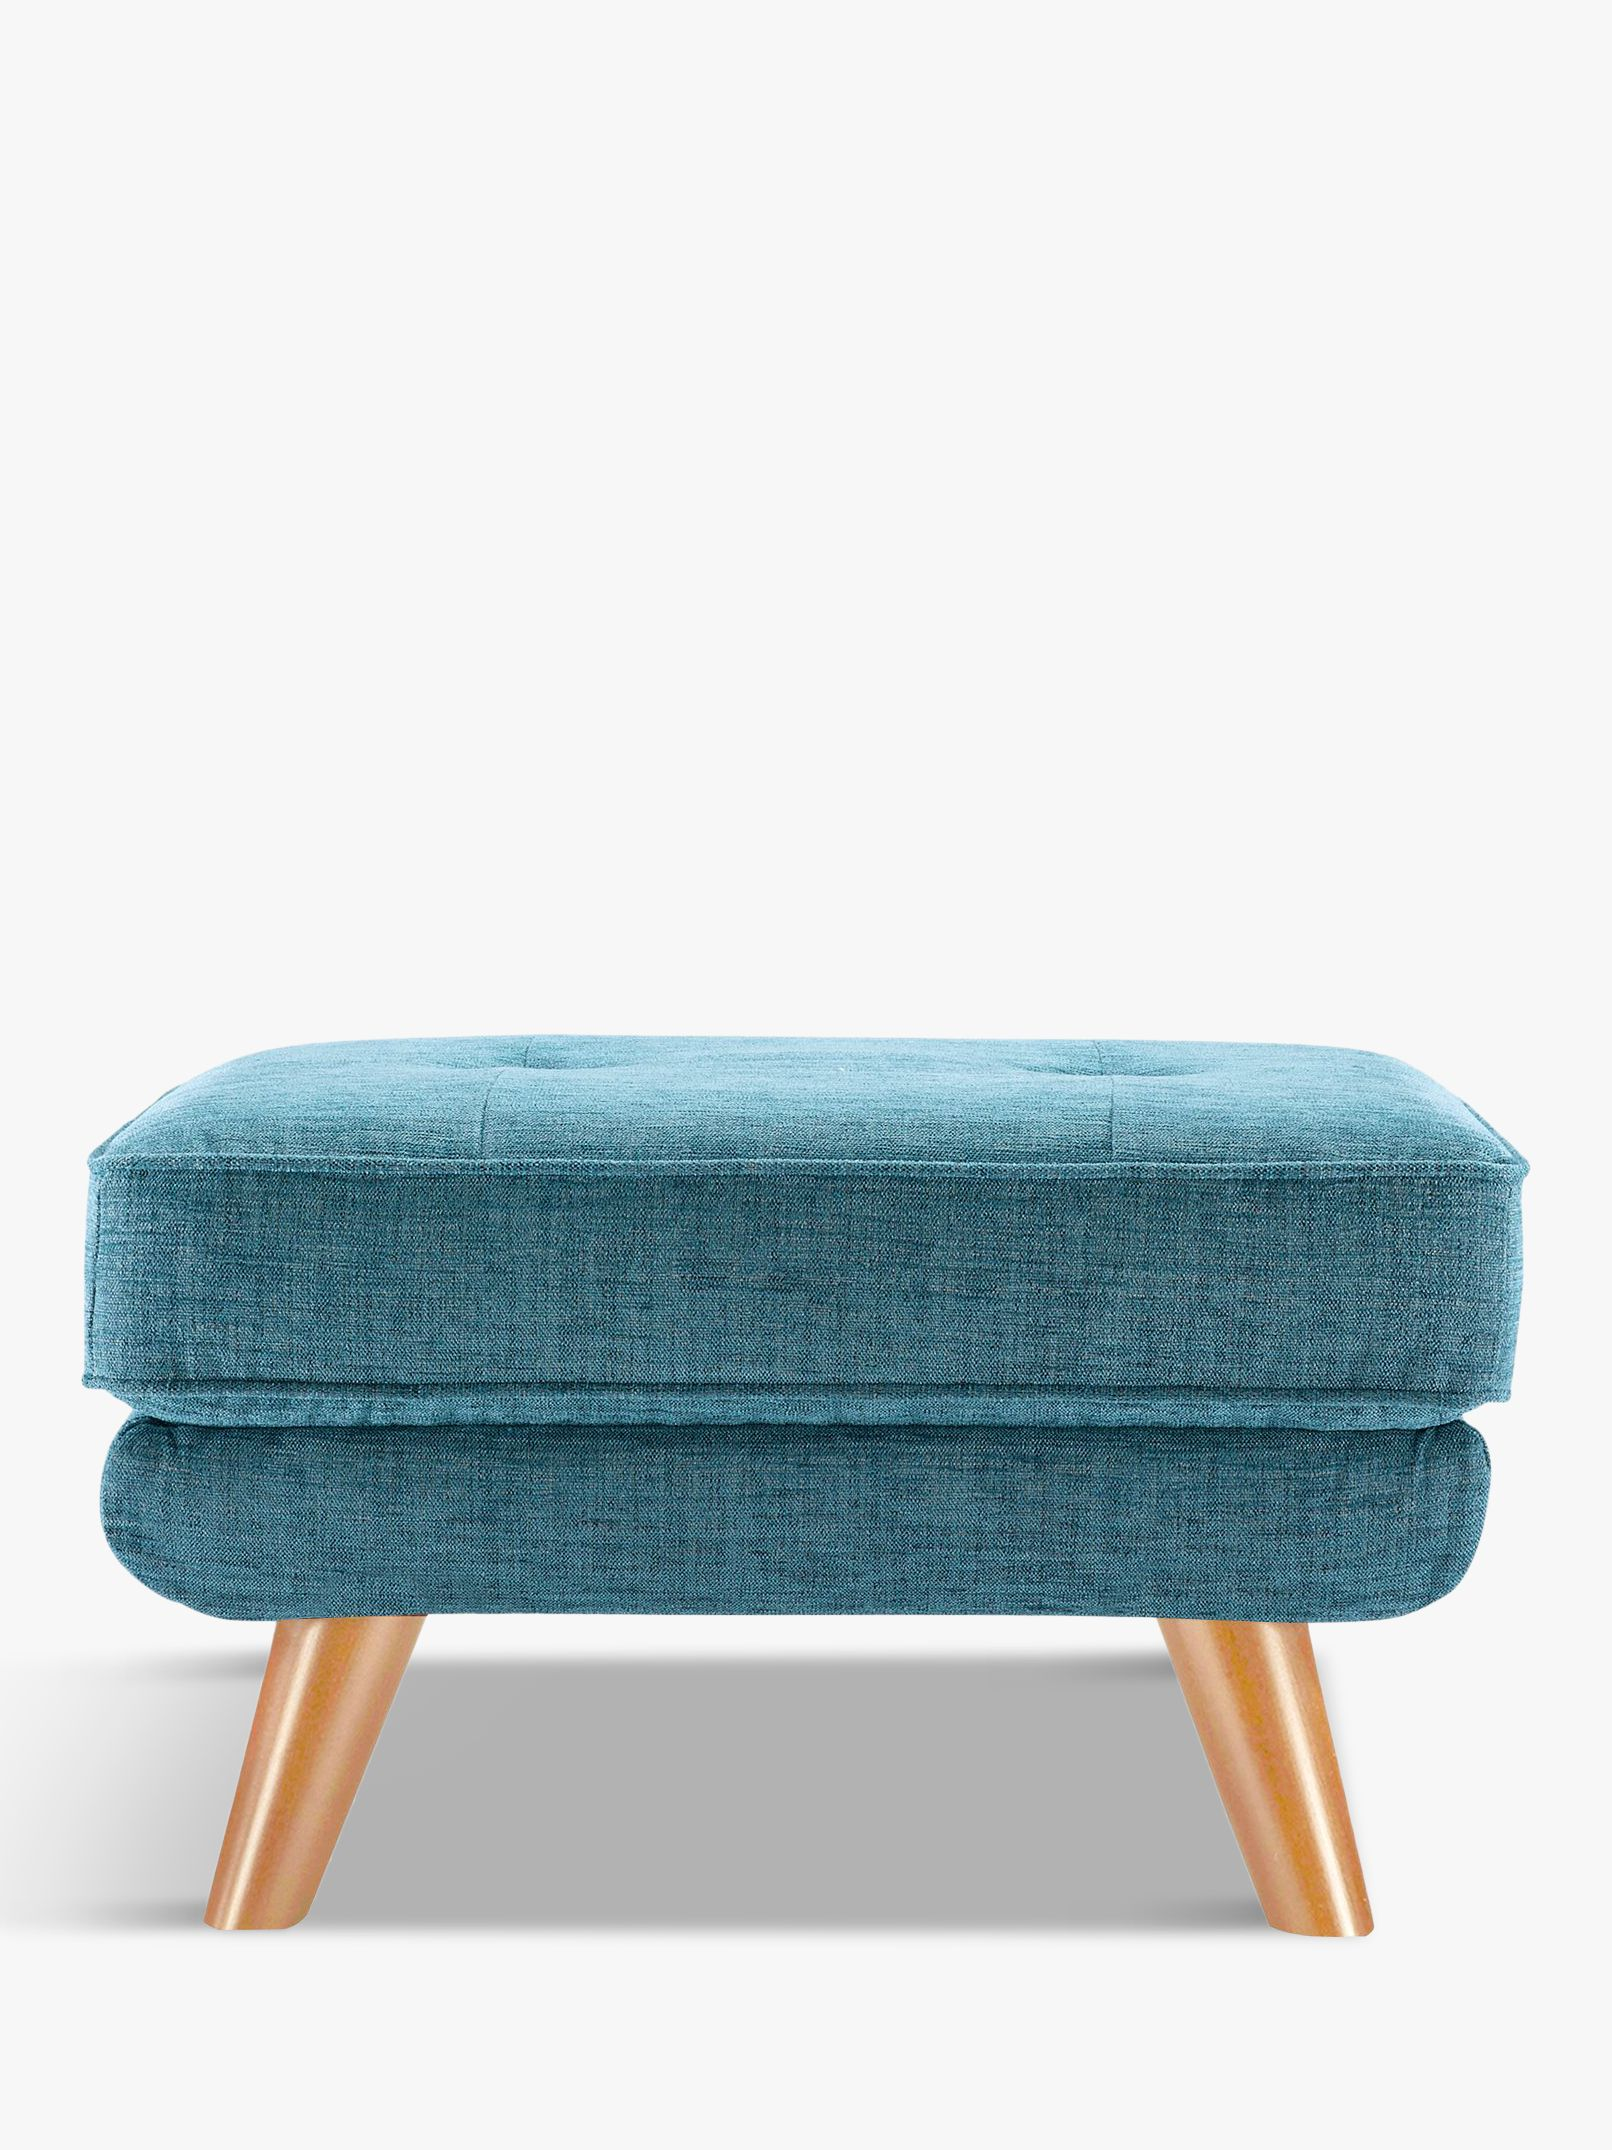 G Plan Vintage The Fifty Three Footstool, Marl Grey